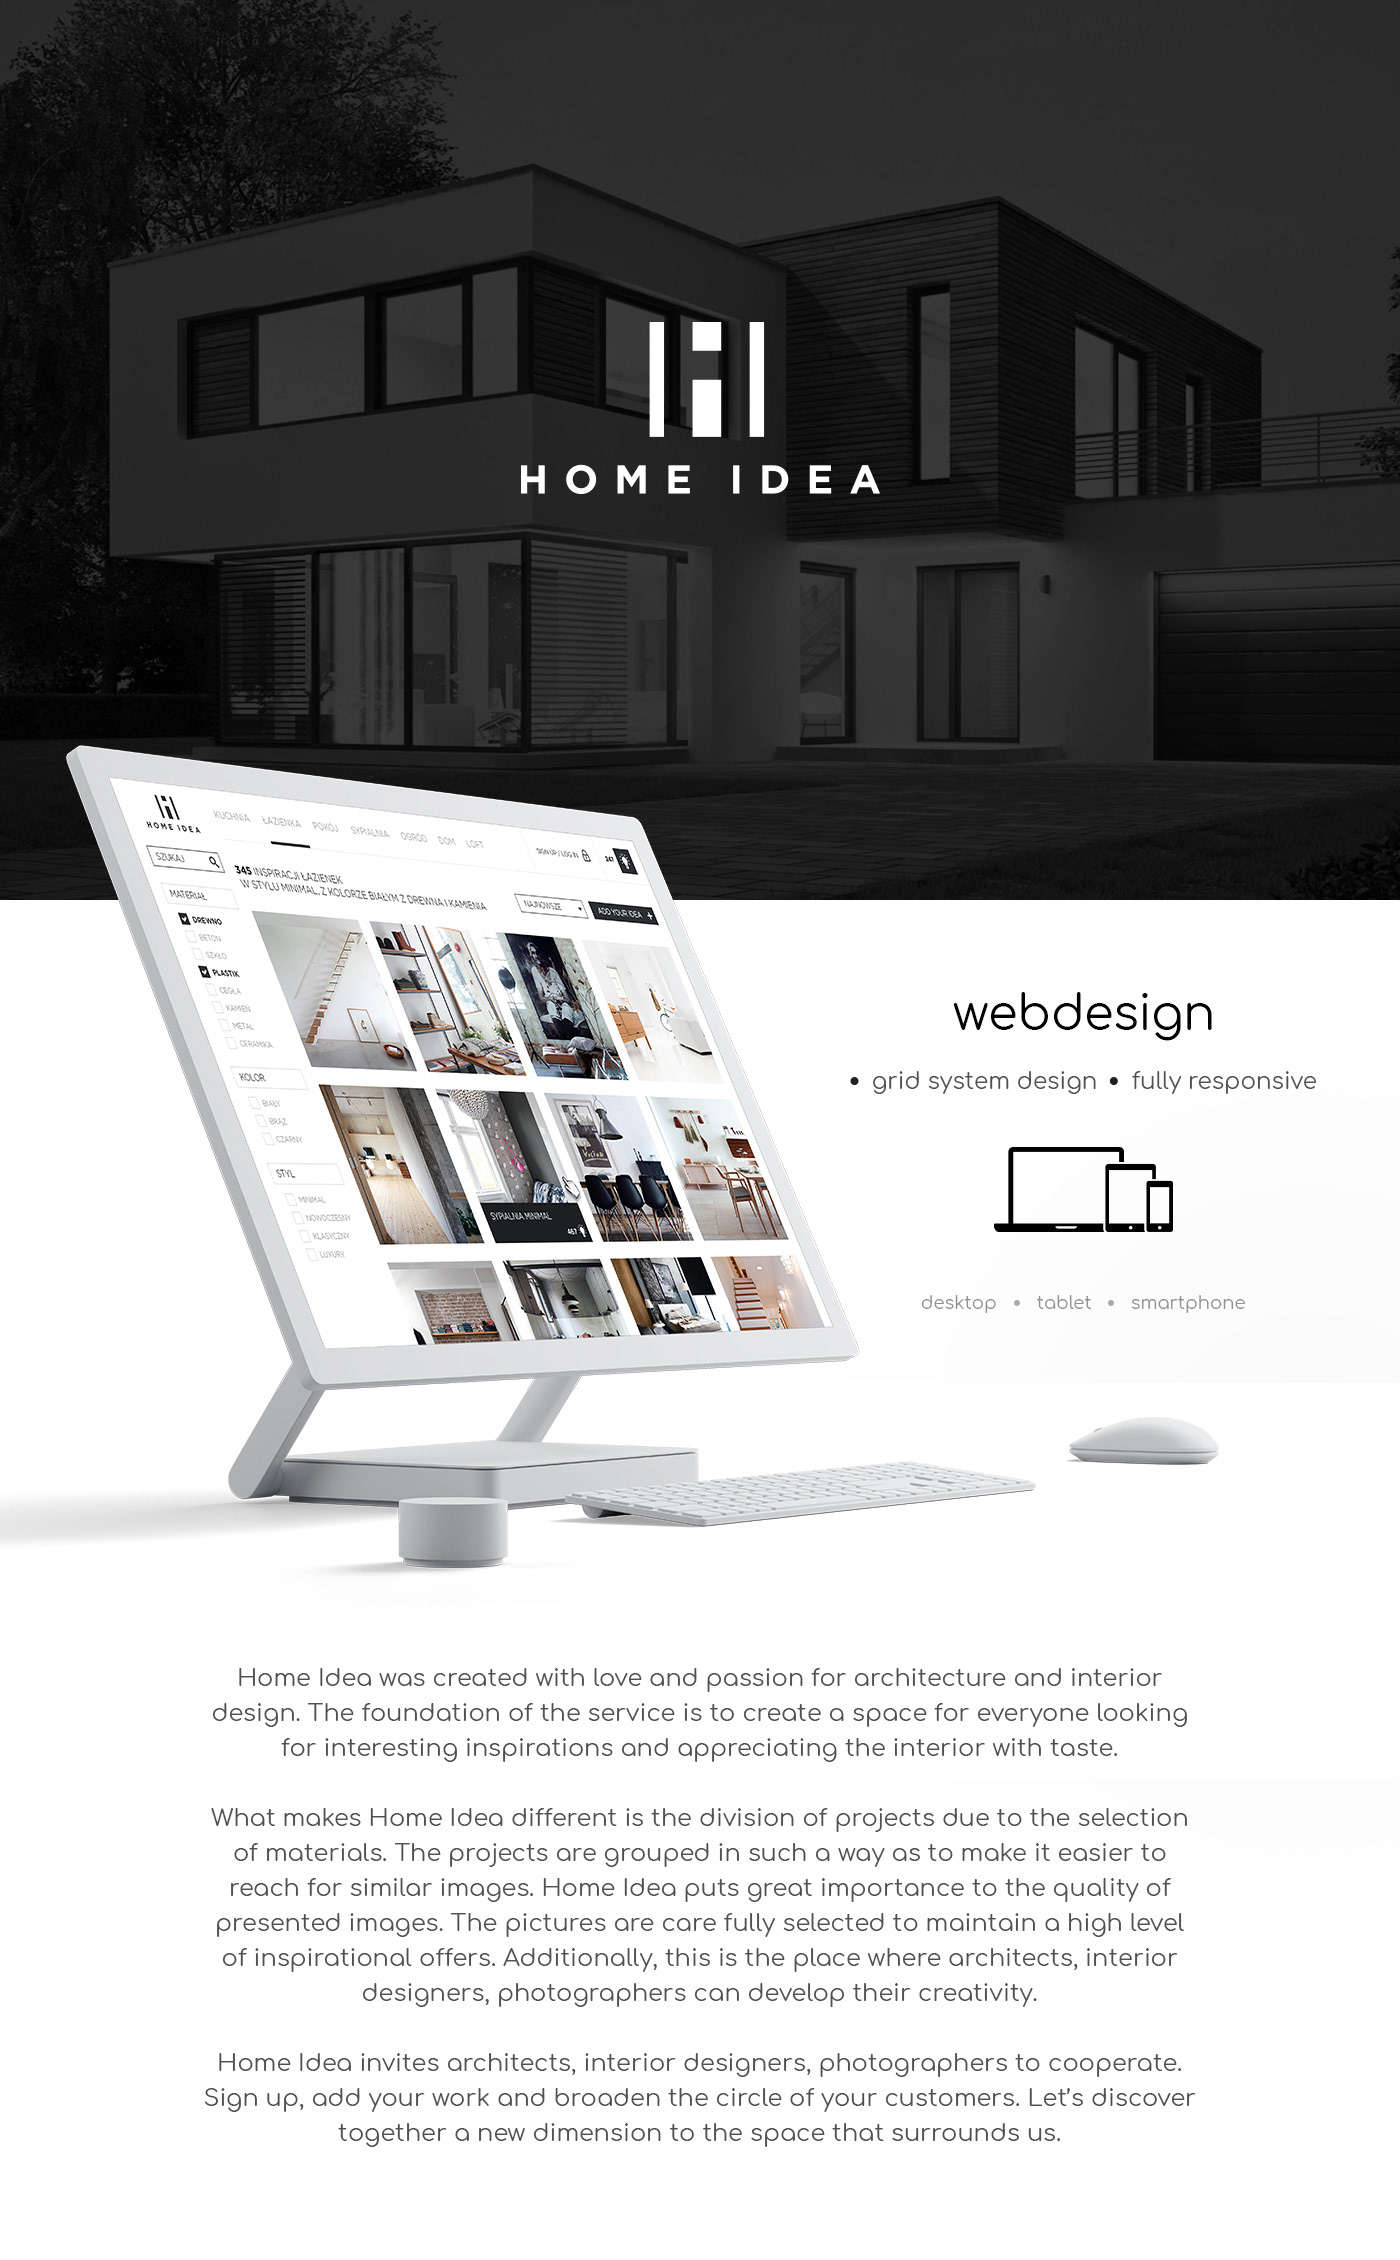 Home Idea Webdesign And Brand Identity On Behance